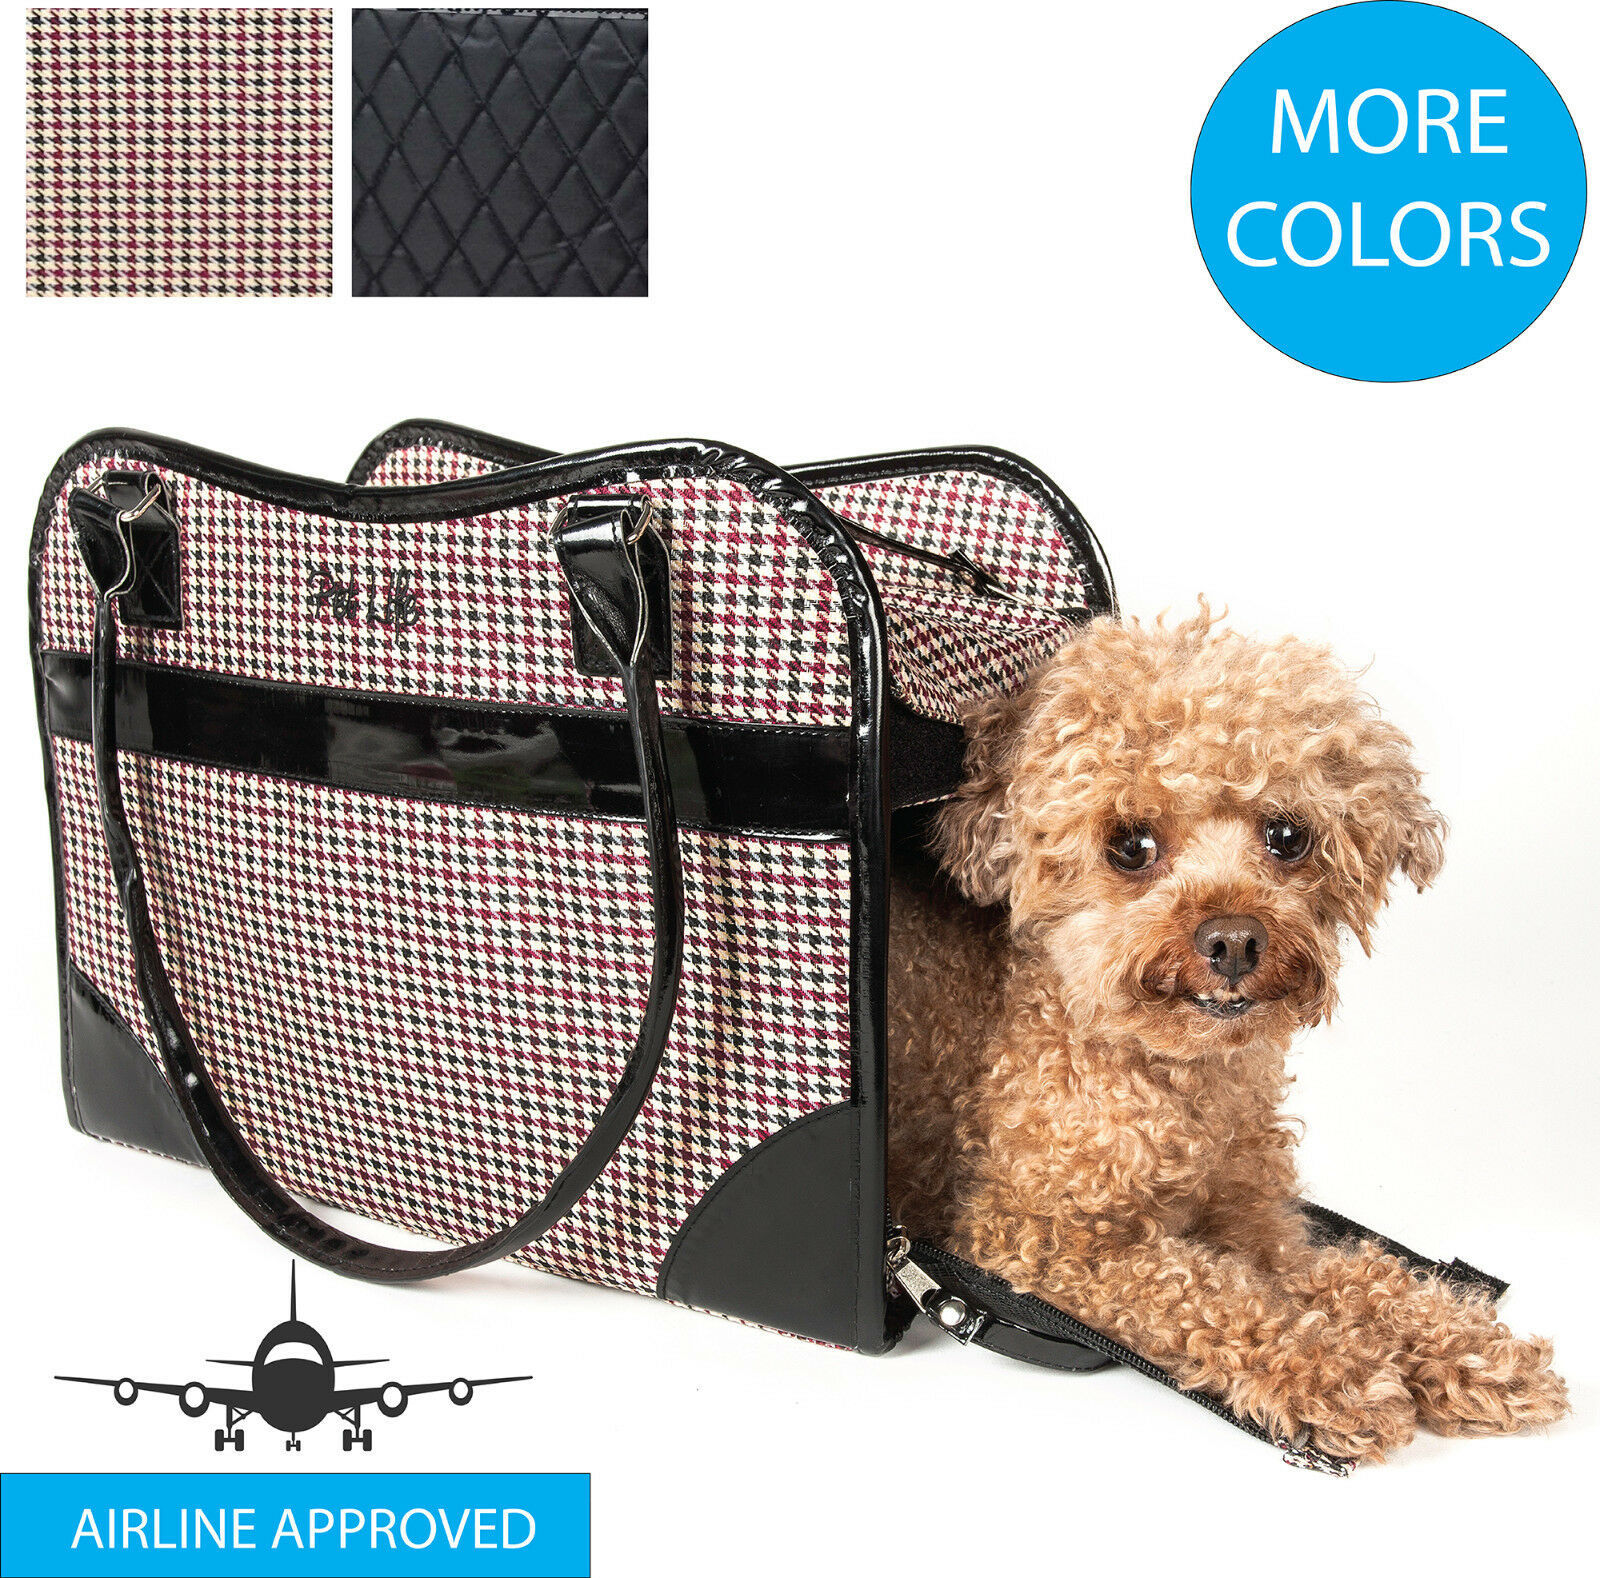 Primary image for Exquisite Designer Fashion Travel Pet Dog or Cat Carrier Tote Bag Purse